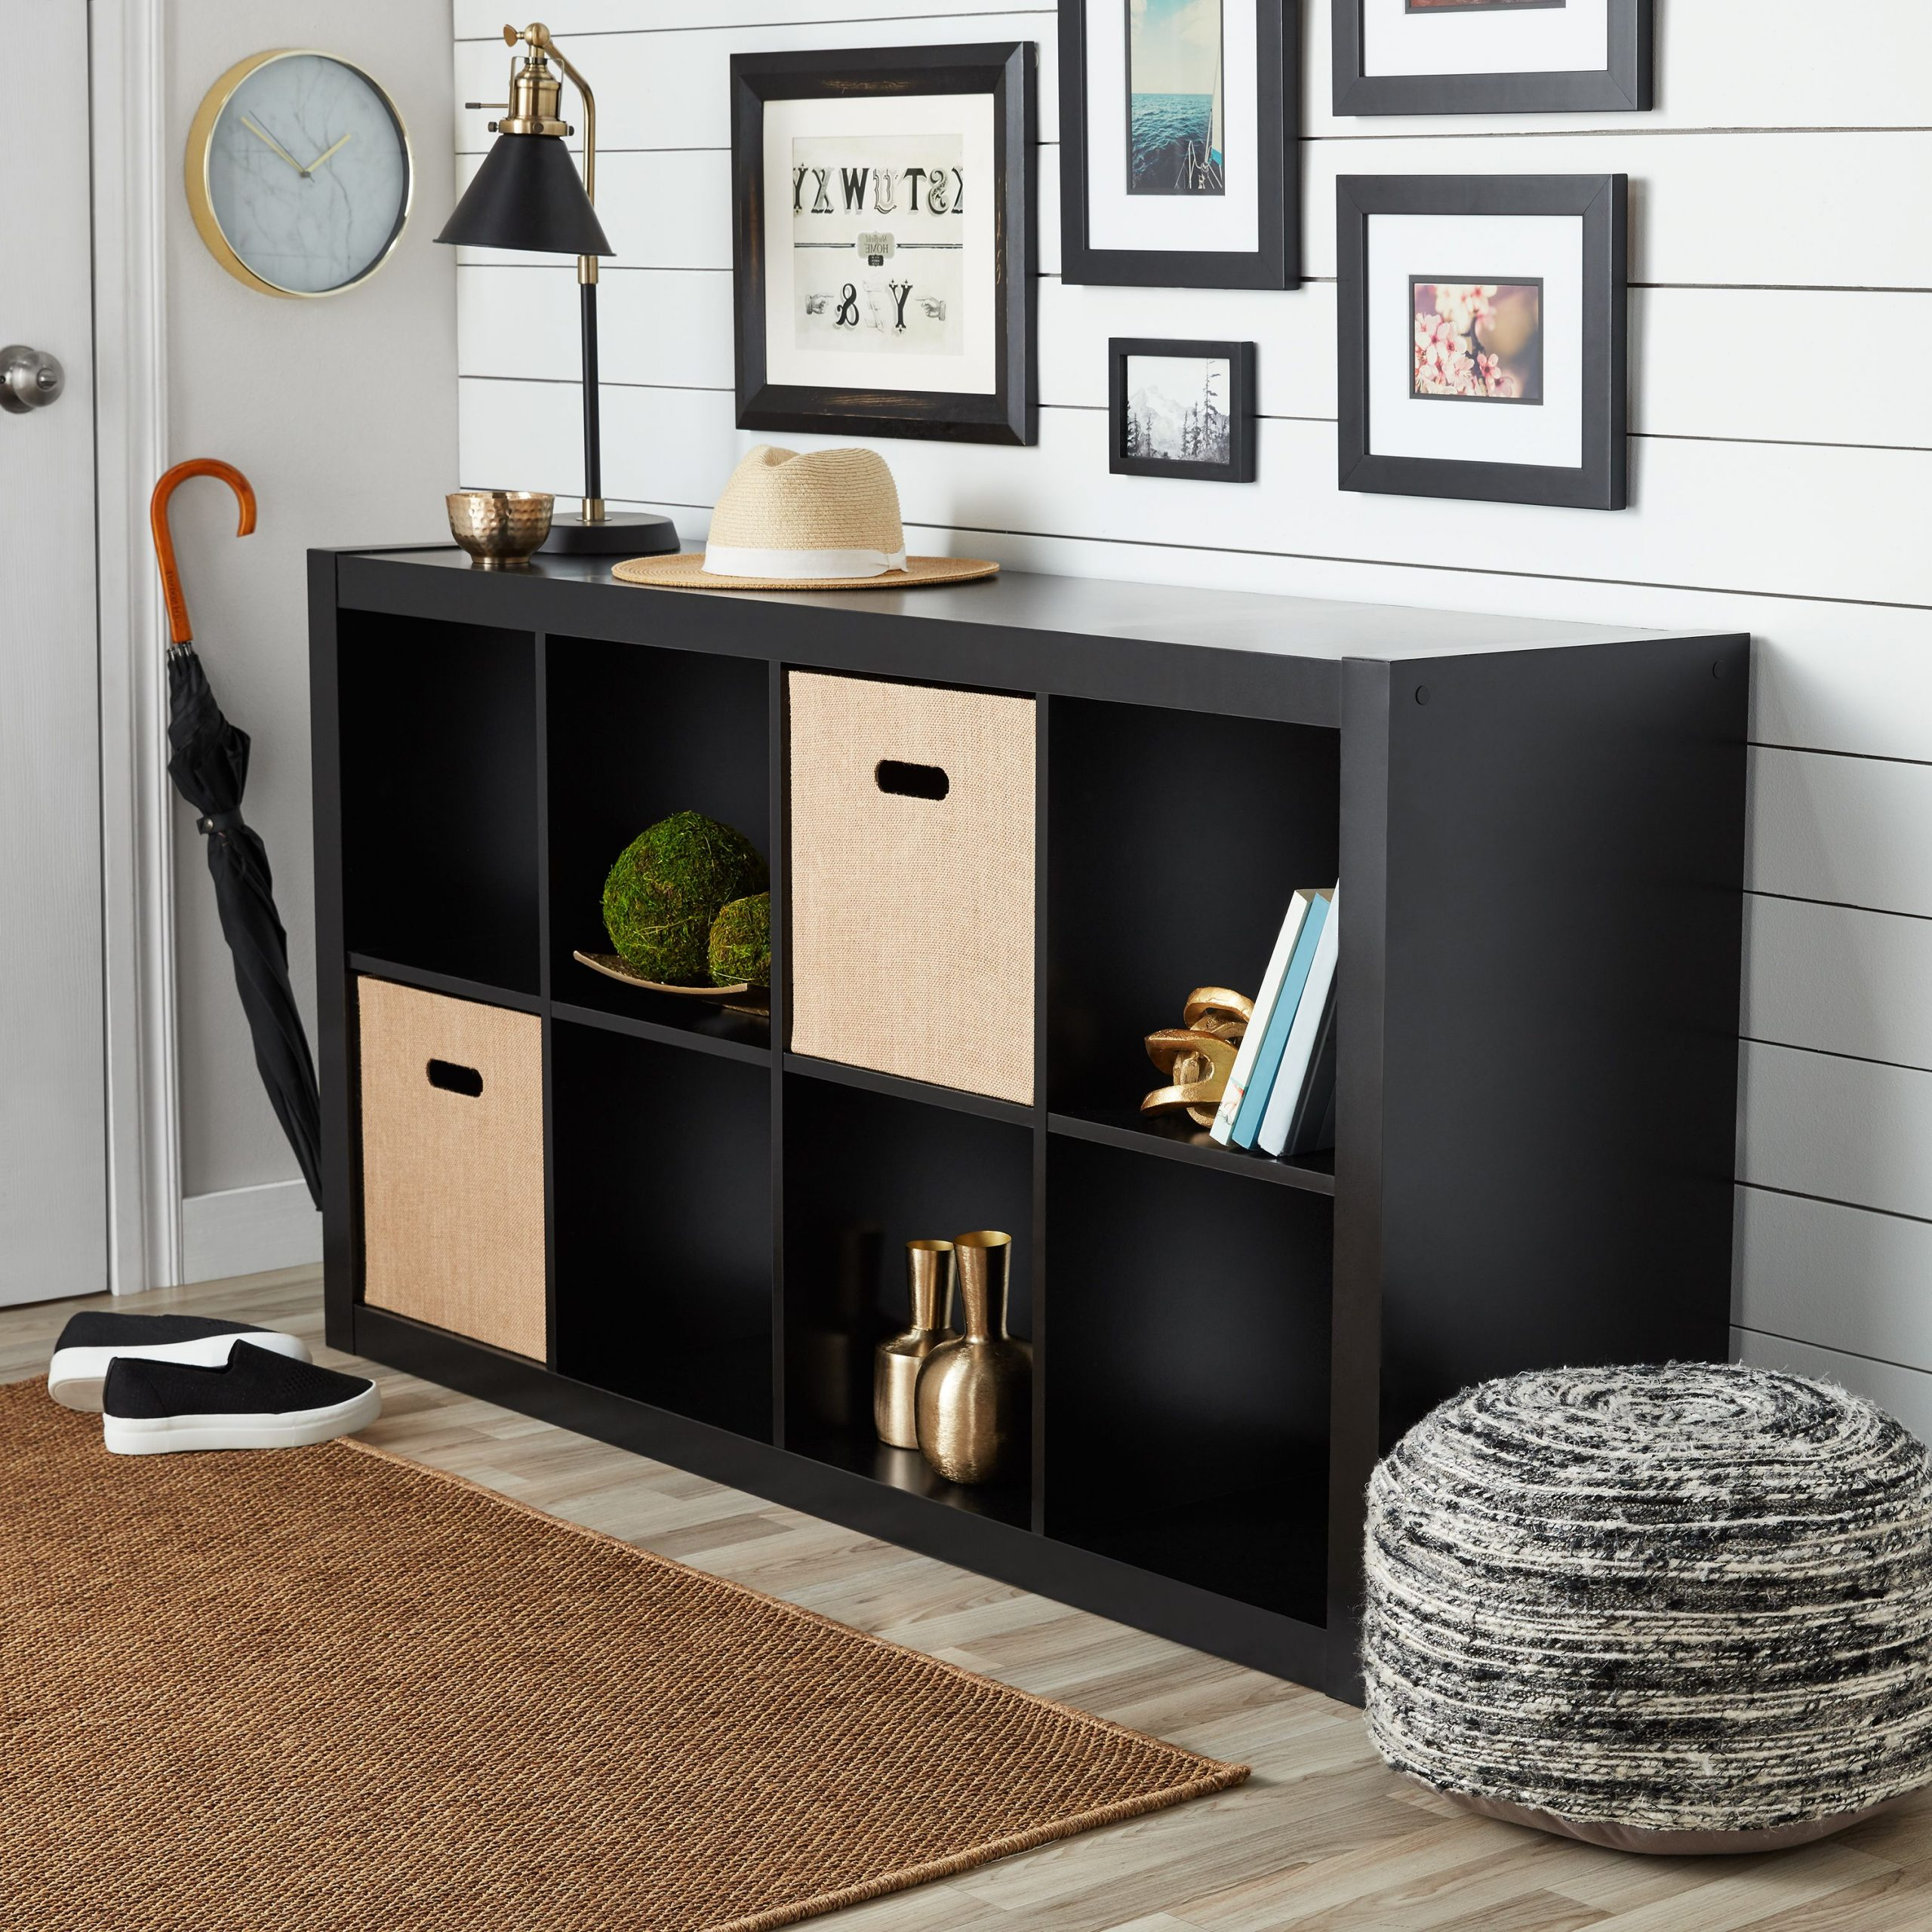 Better Homes & Gardens 8 Cube Organizer, Solid Black Throughout Mainstays 4 Cube Tv Stands In Multiple Finishes (View 2 of 20)